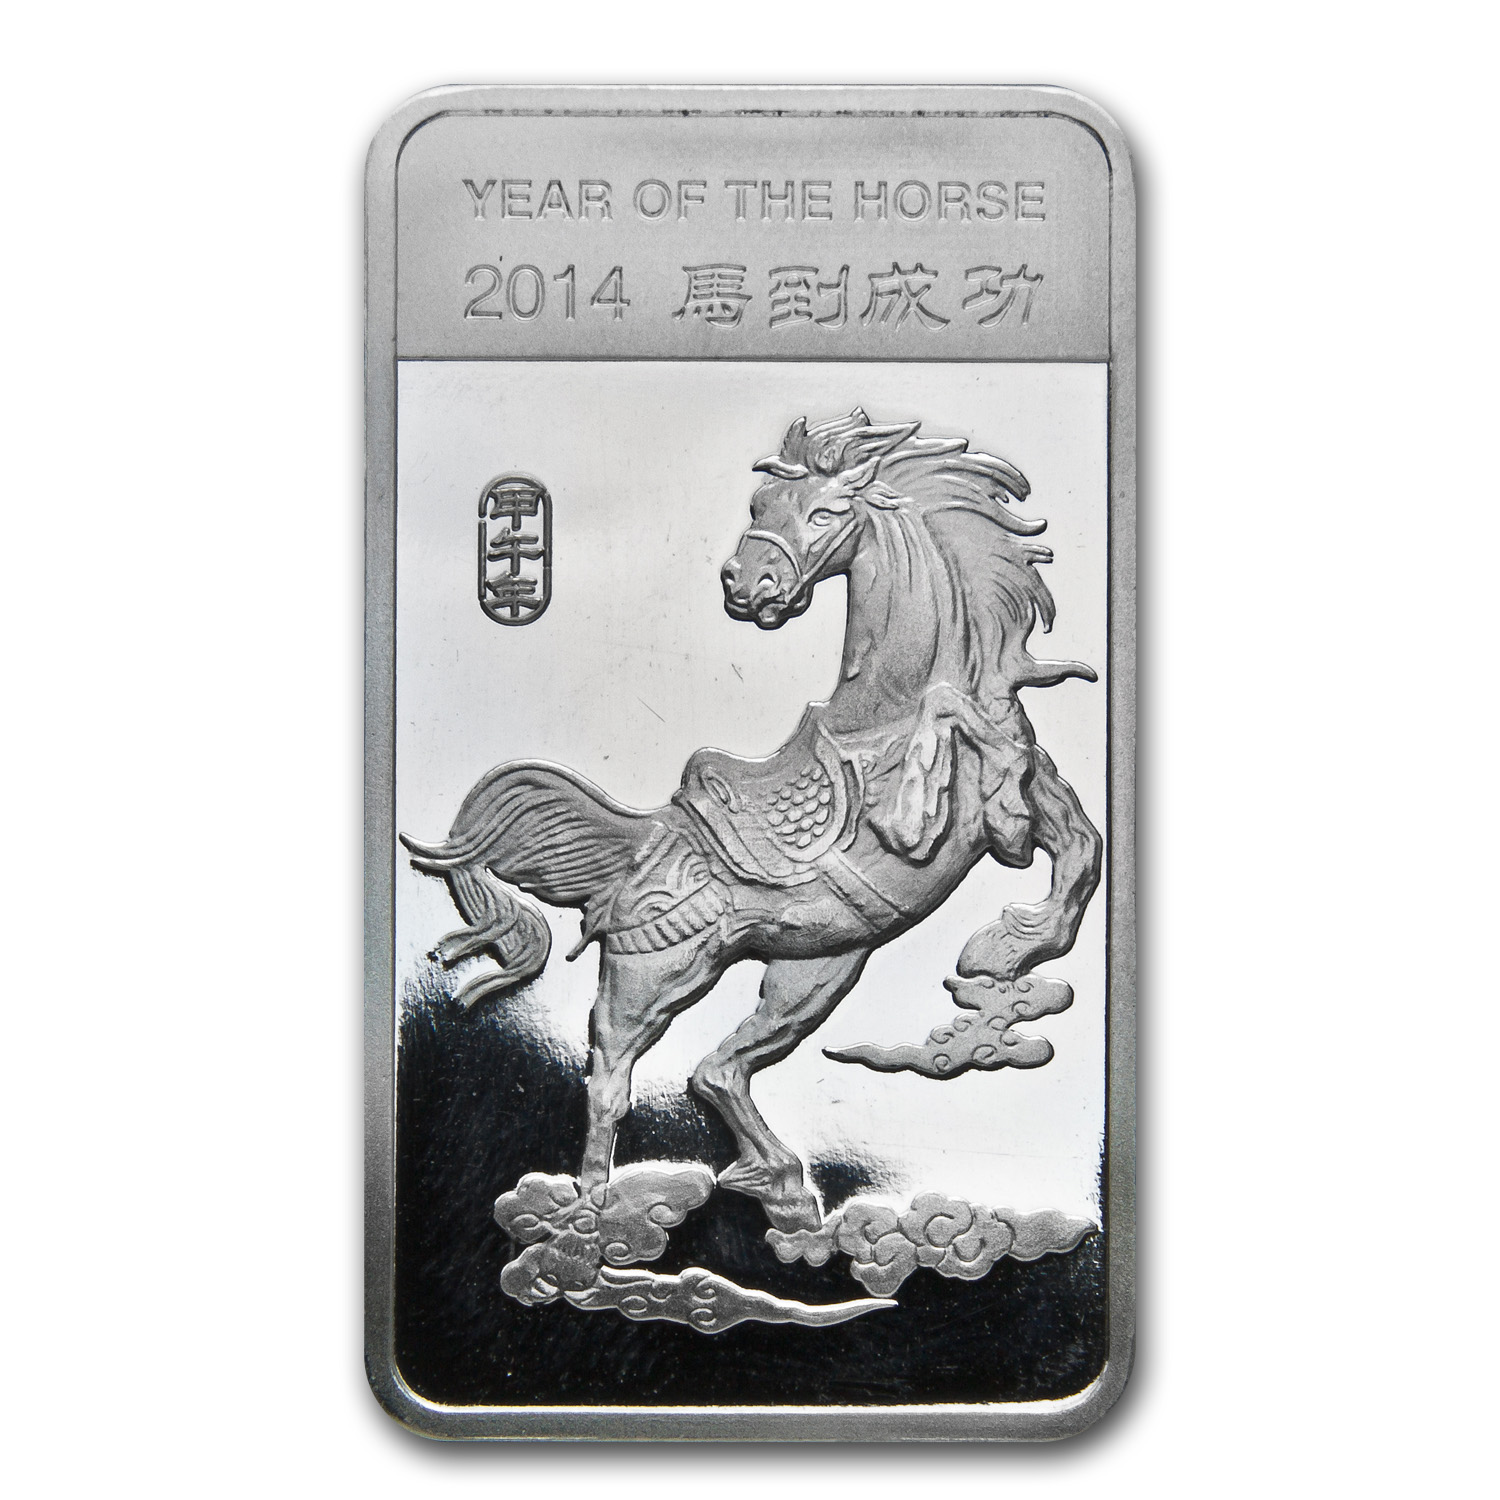 1/2 oz Silver Bars - APMEX (2014 Year of the Horse)